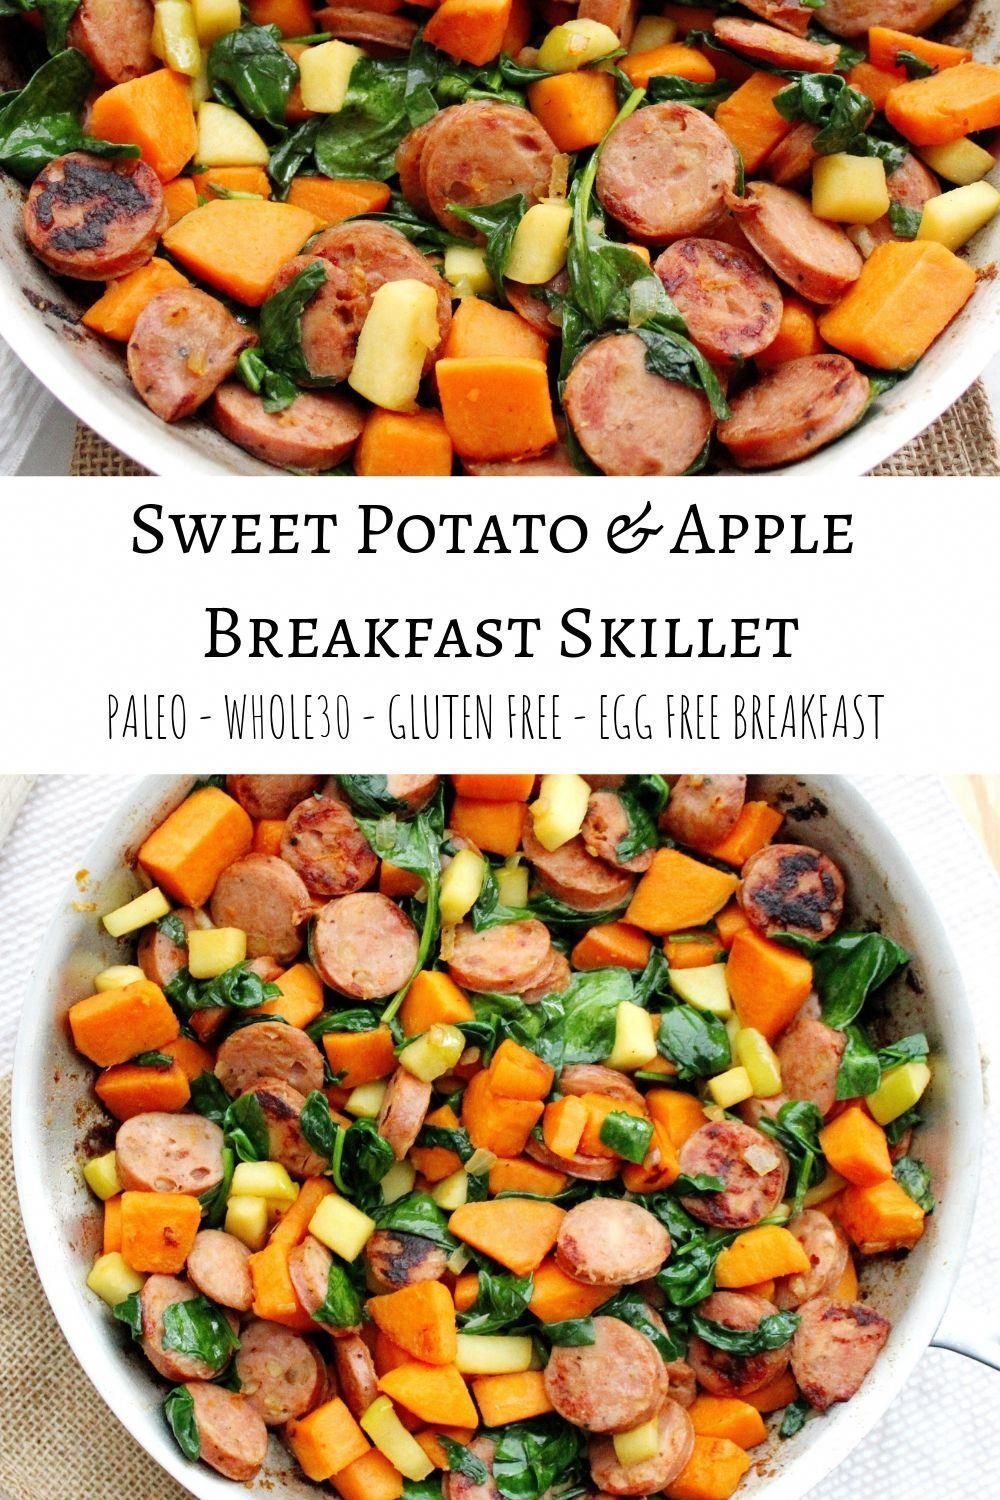 Sweet Potato and Apple Breakfast Skillet Egg Free  The Bettered Blondie  Even those of us who love eggs get tired of them every sometimes Fight that breakfast boredom wit...